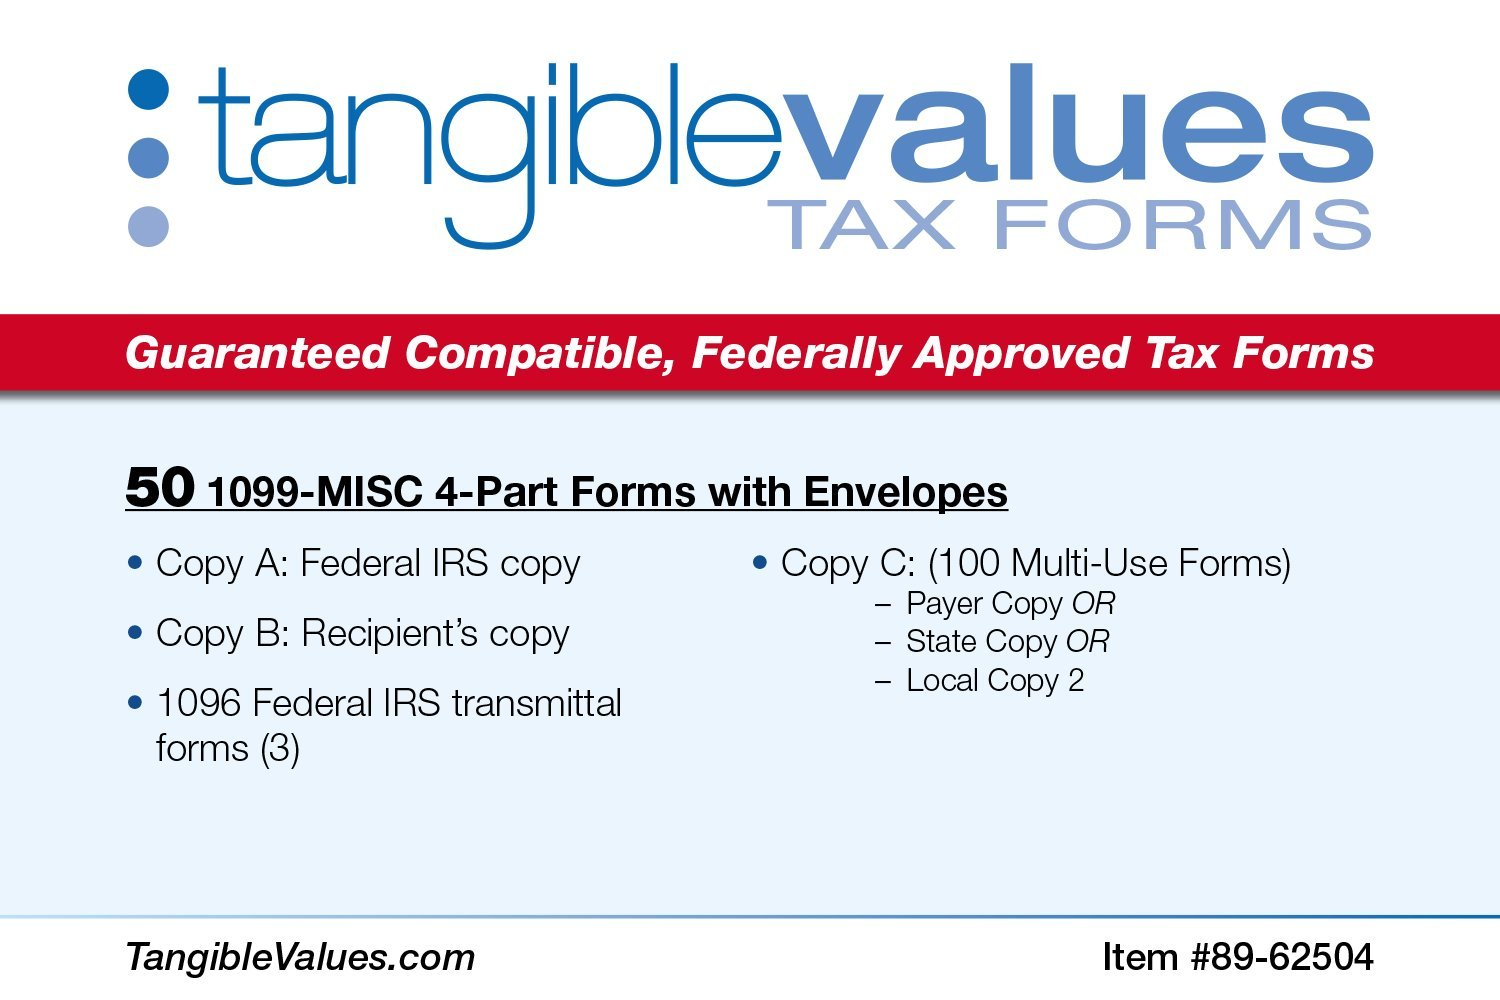 Amazon tangible values 1099 misc laser forms 4 part kit with amazon tangible values 1099 misc laser forms 4 part kit with env for 50 vendors 3 form 1096s 2017 tax forms office products falaconquin